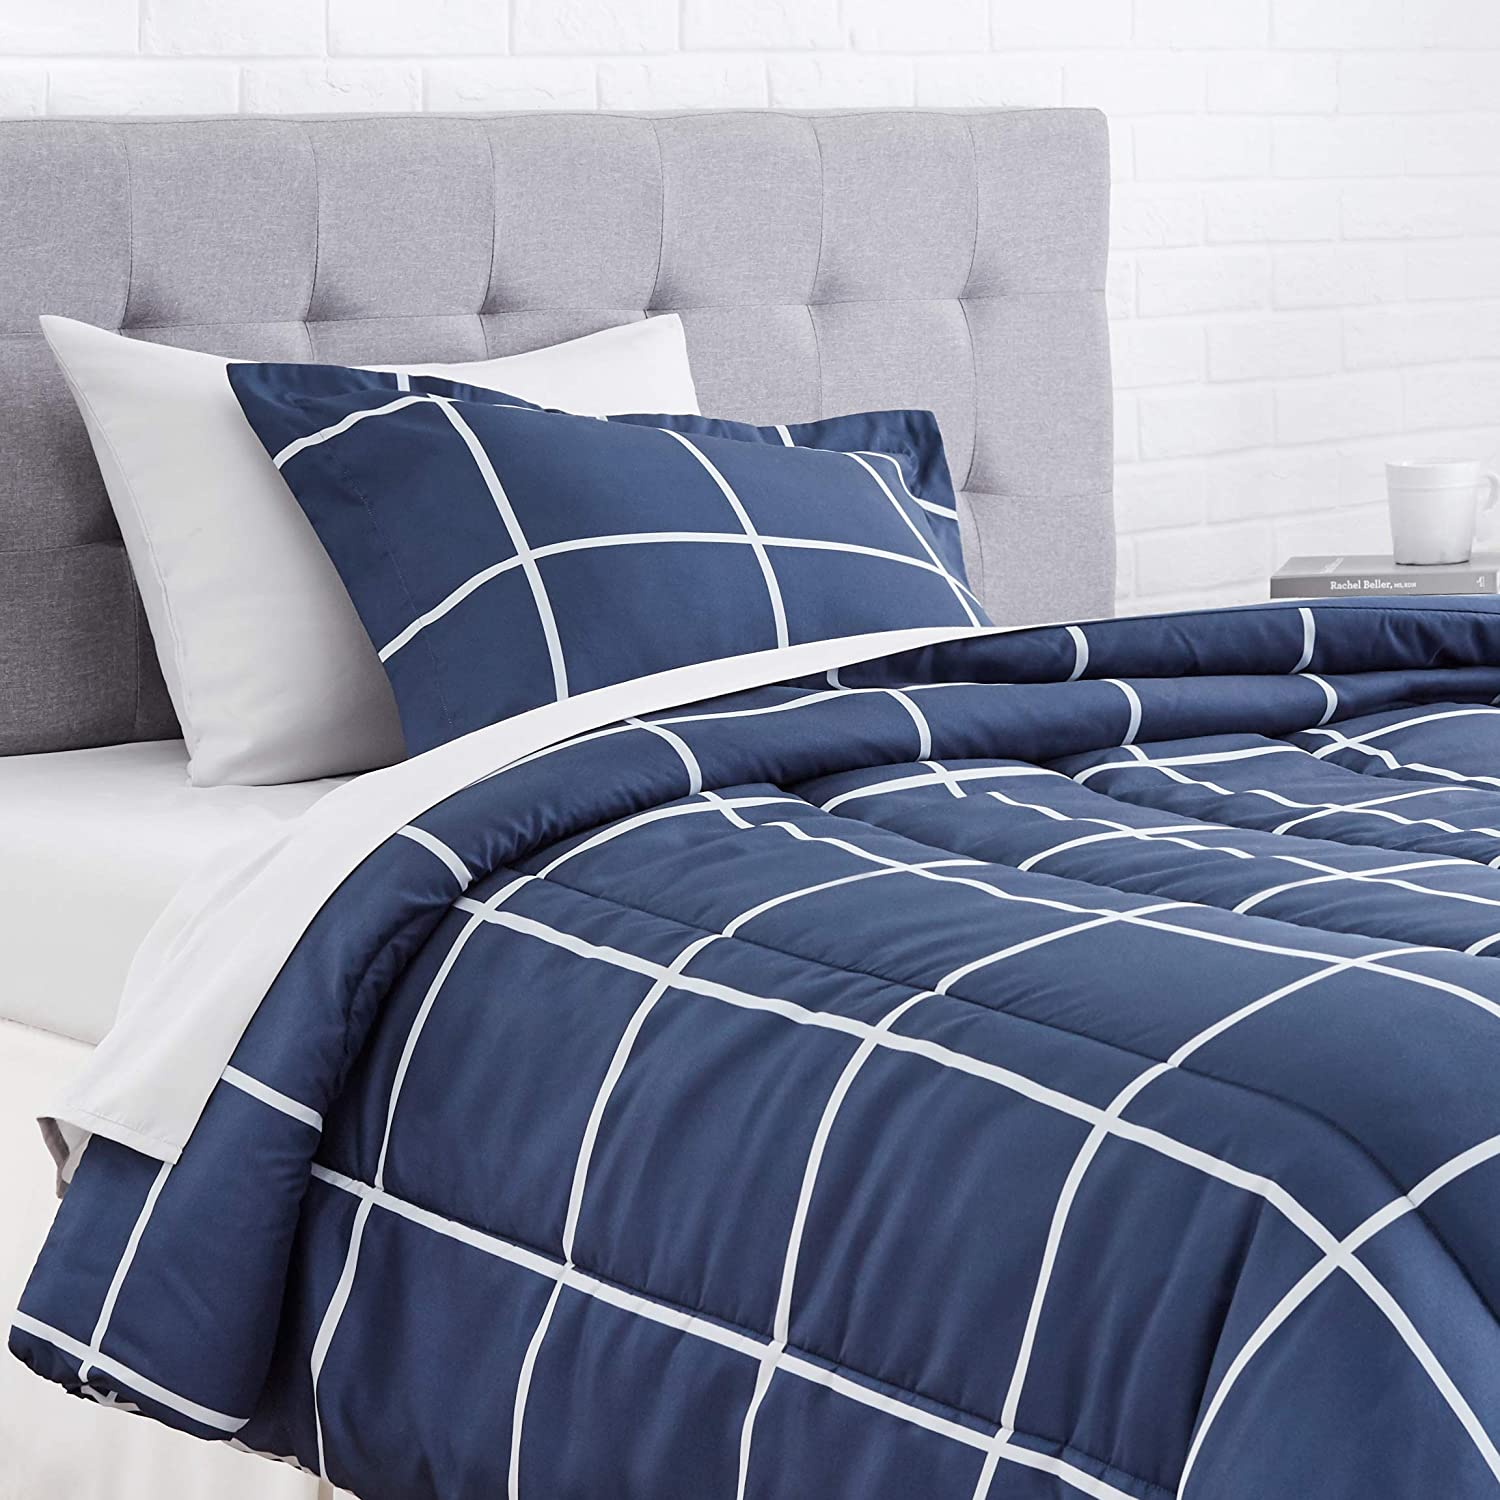 amazon basics 5 piece light weight microfiber bed in a bag comforter bedding set twin navy simple plaid